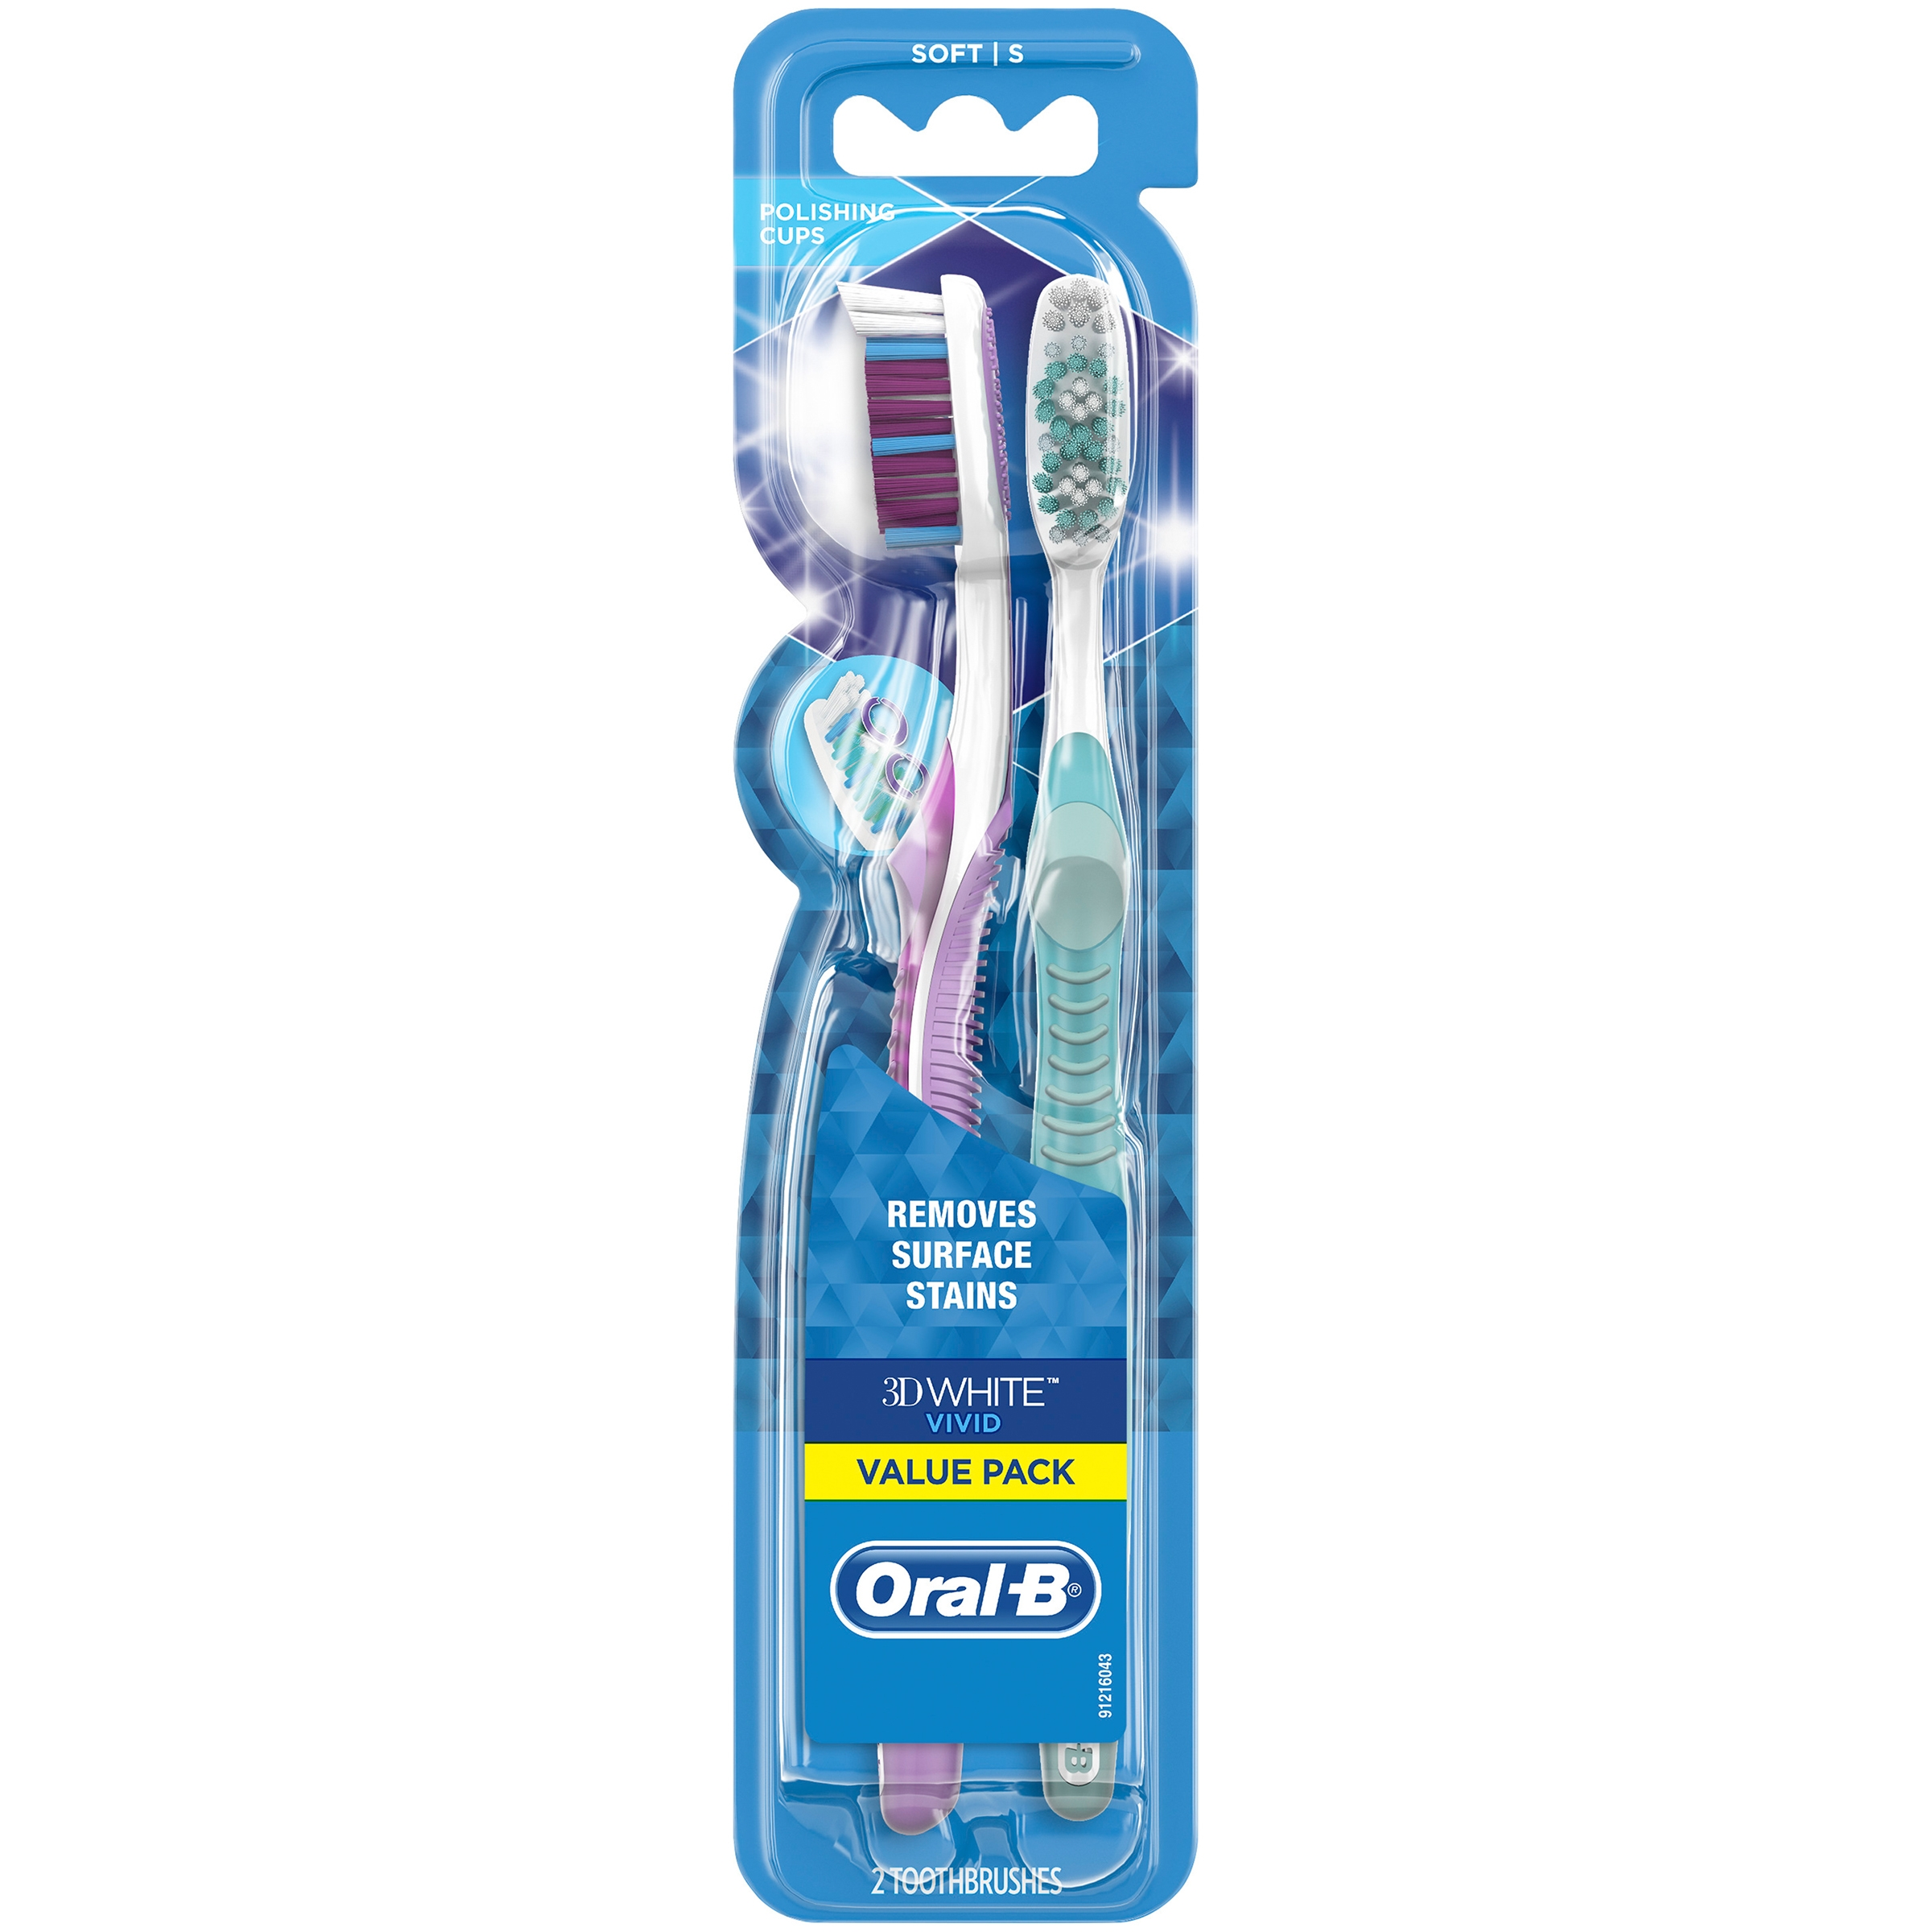 Oral-B 3D White Vivid Manual Toothbrushes, Soft Bristles, 2 Count Value Pack